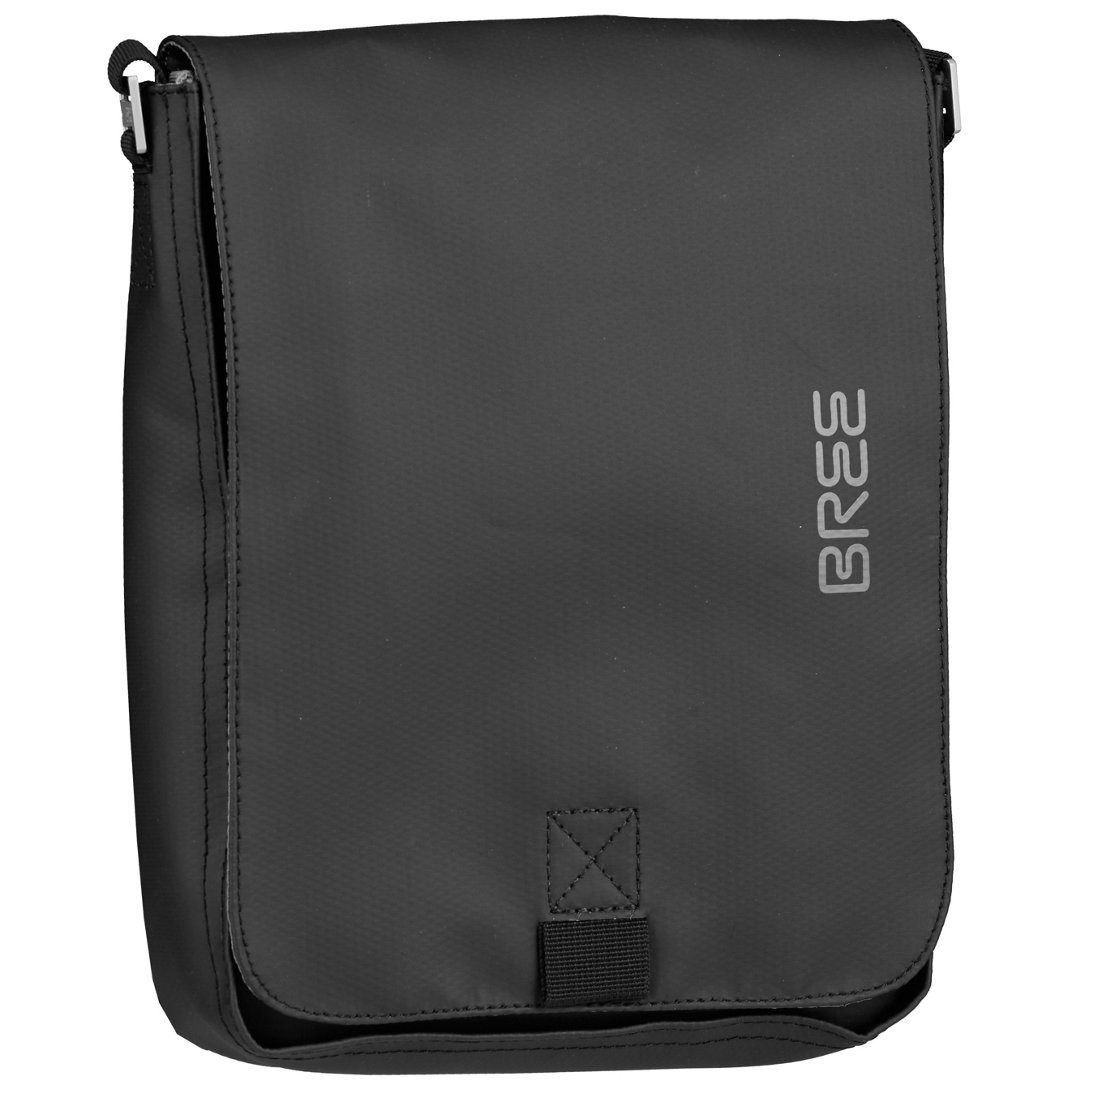 amazing selection really comfortable incredible prices Bree Punch 52 Schultertasche 26 cm - black